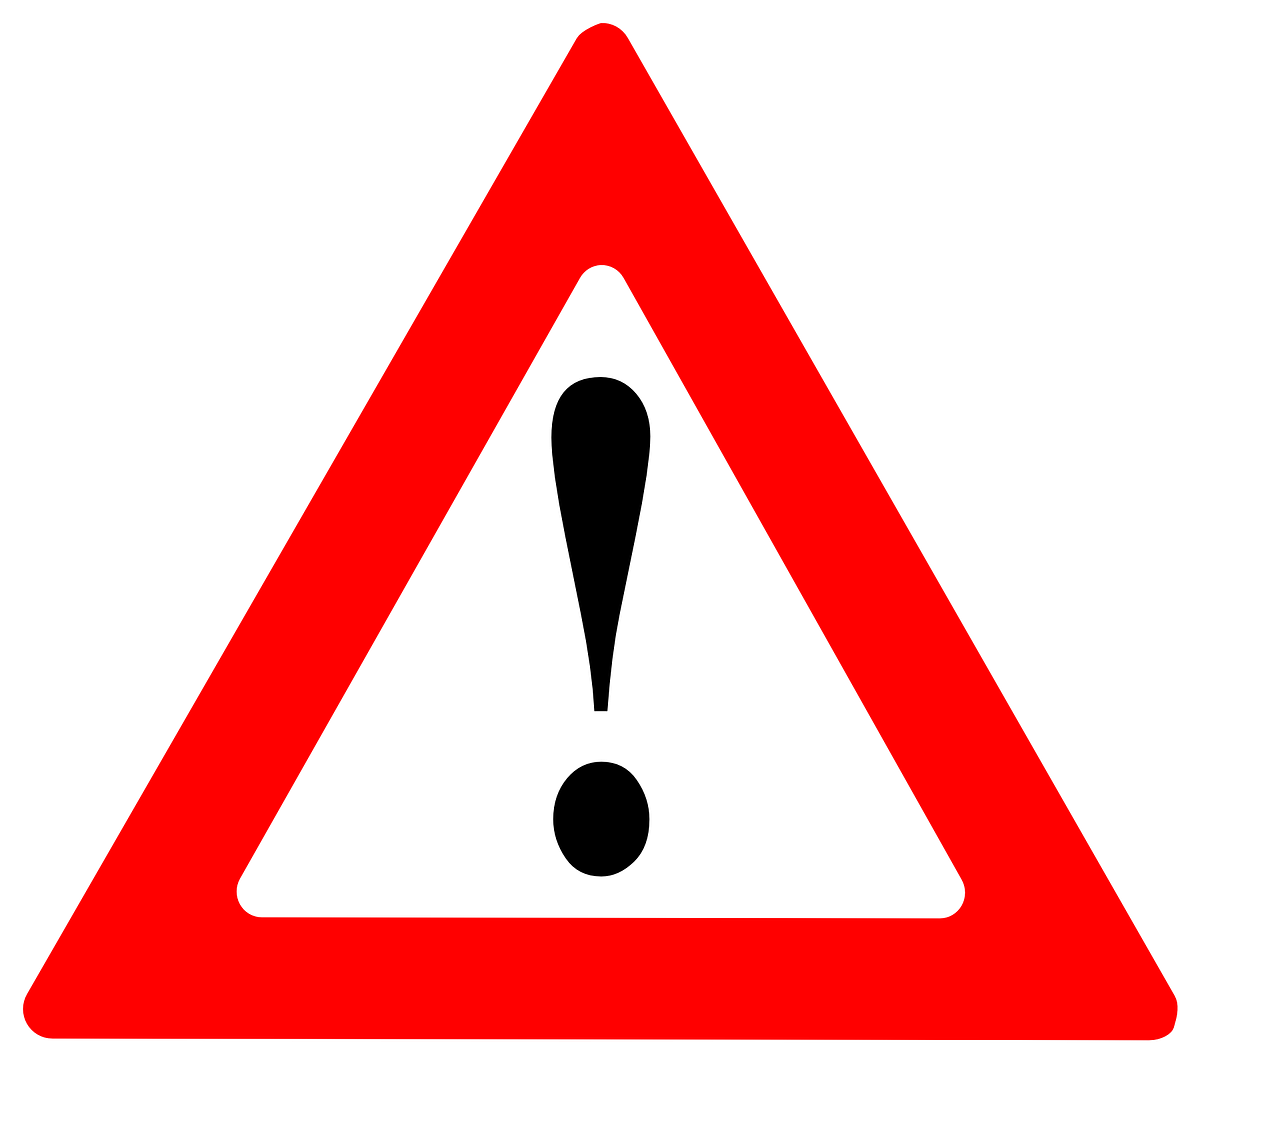 attention (c) Clker-Free-Vector-Images/Pixabay.com